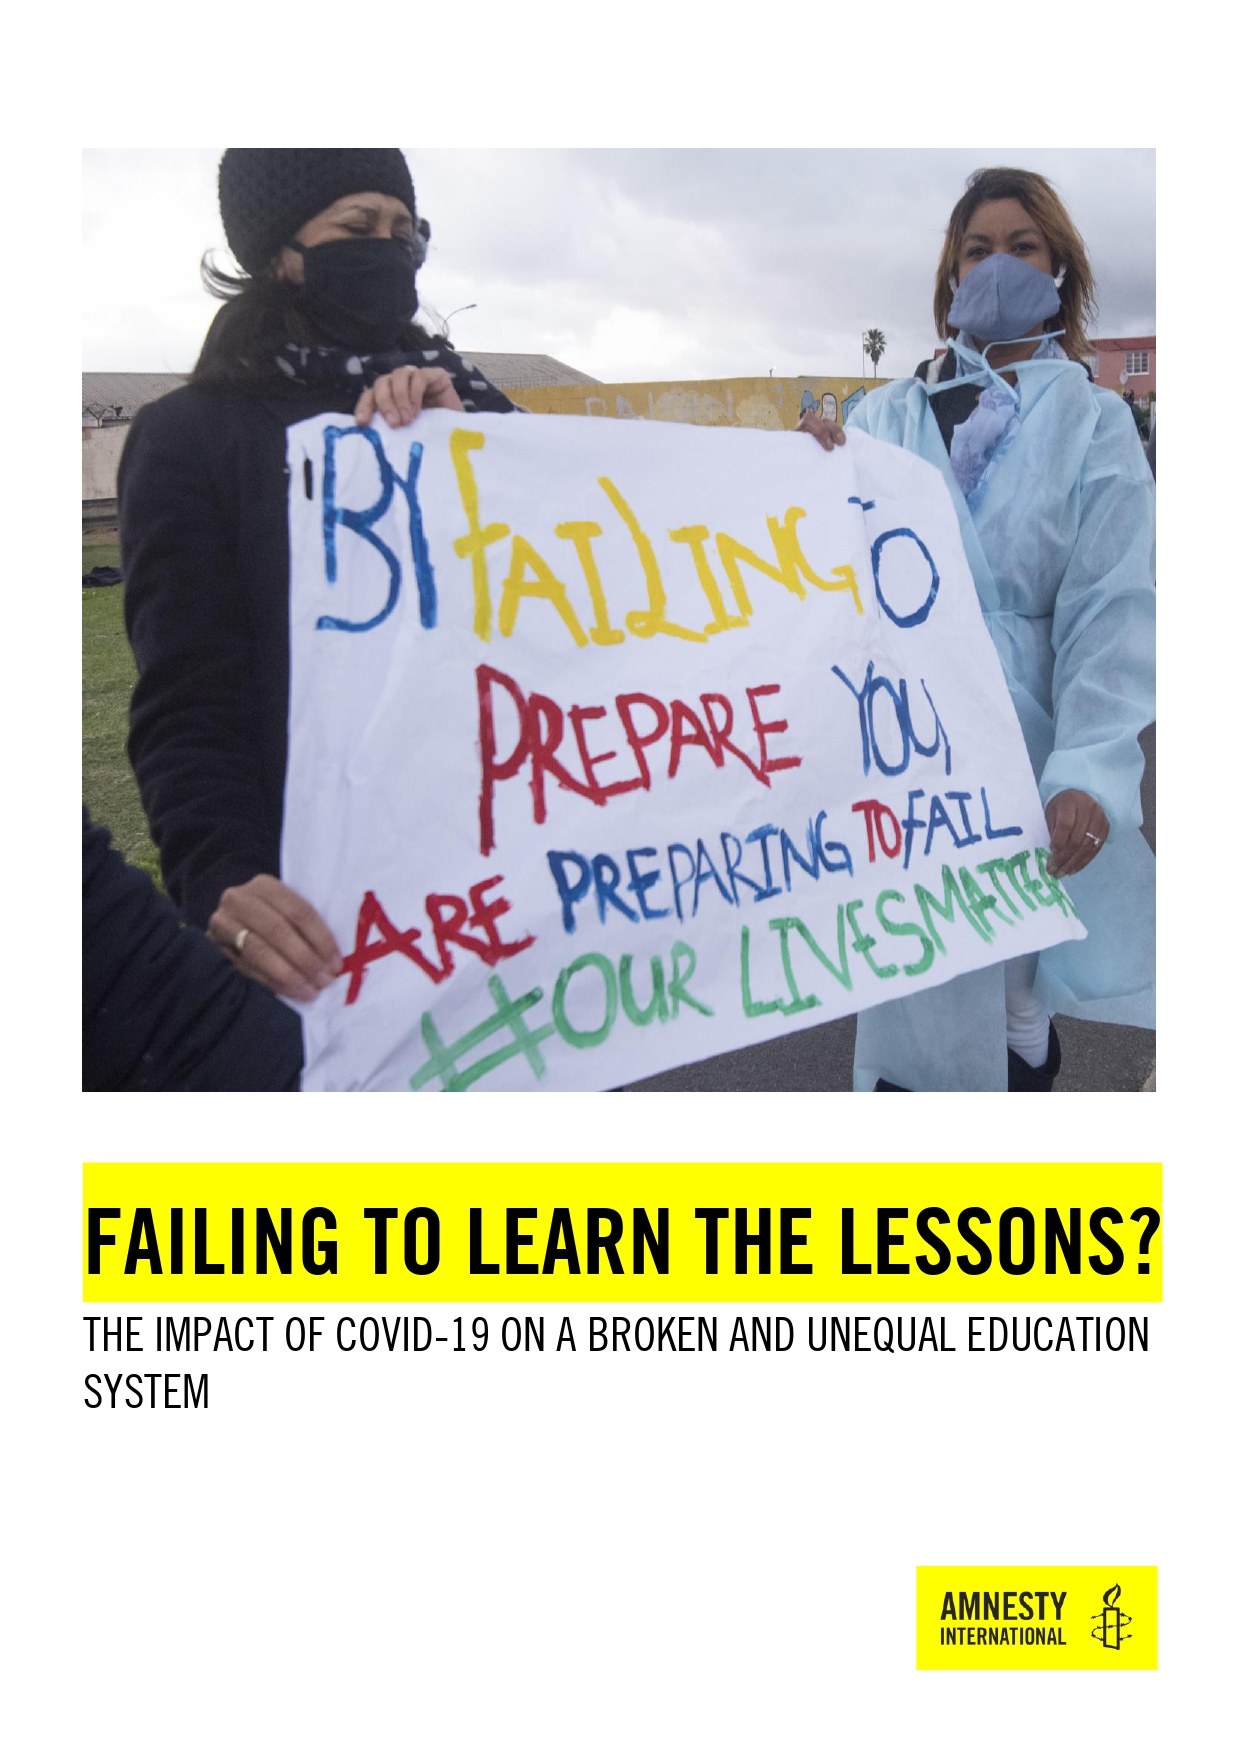 South Africa: Failing to Learn the Lessons? The impact of COVID-19 on a broken and unequal education system